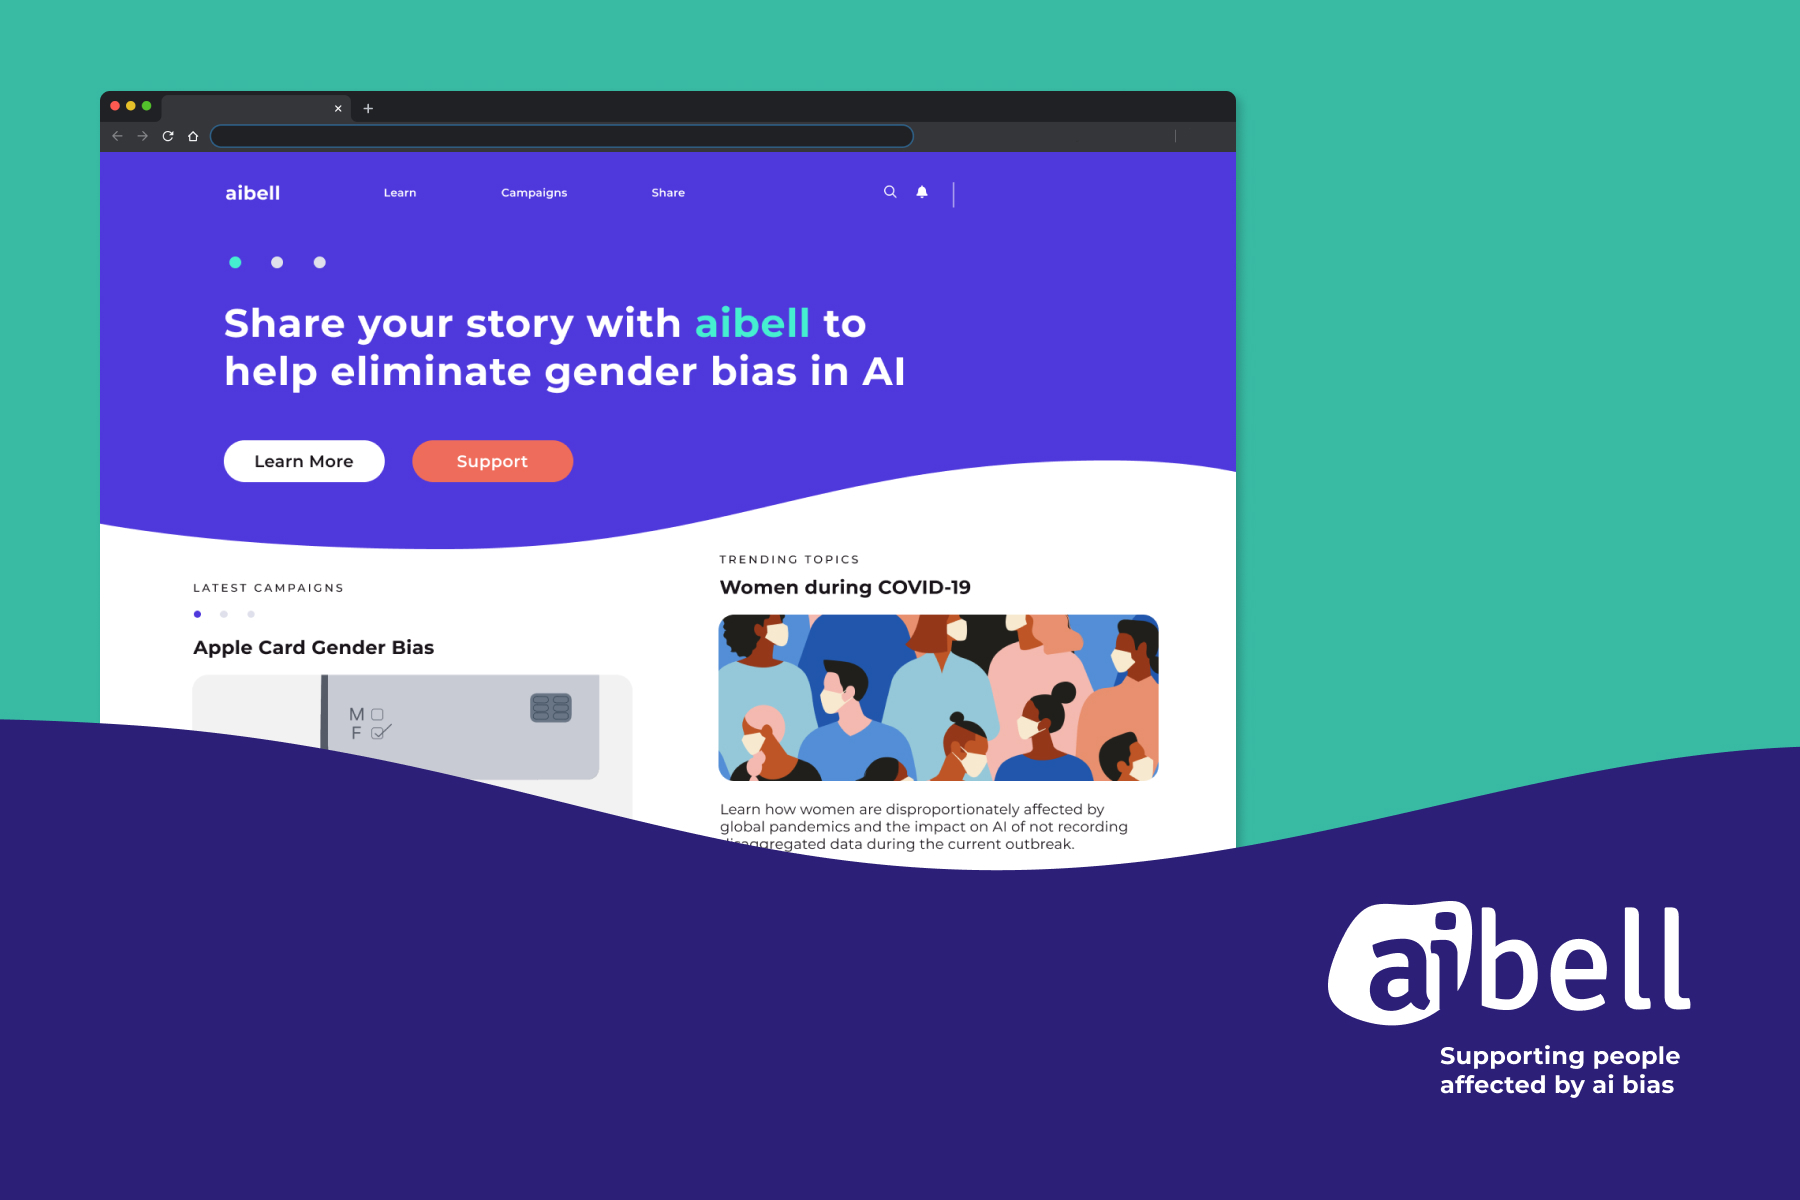 aibell A support platform for people affected by AI bias.